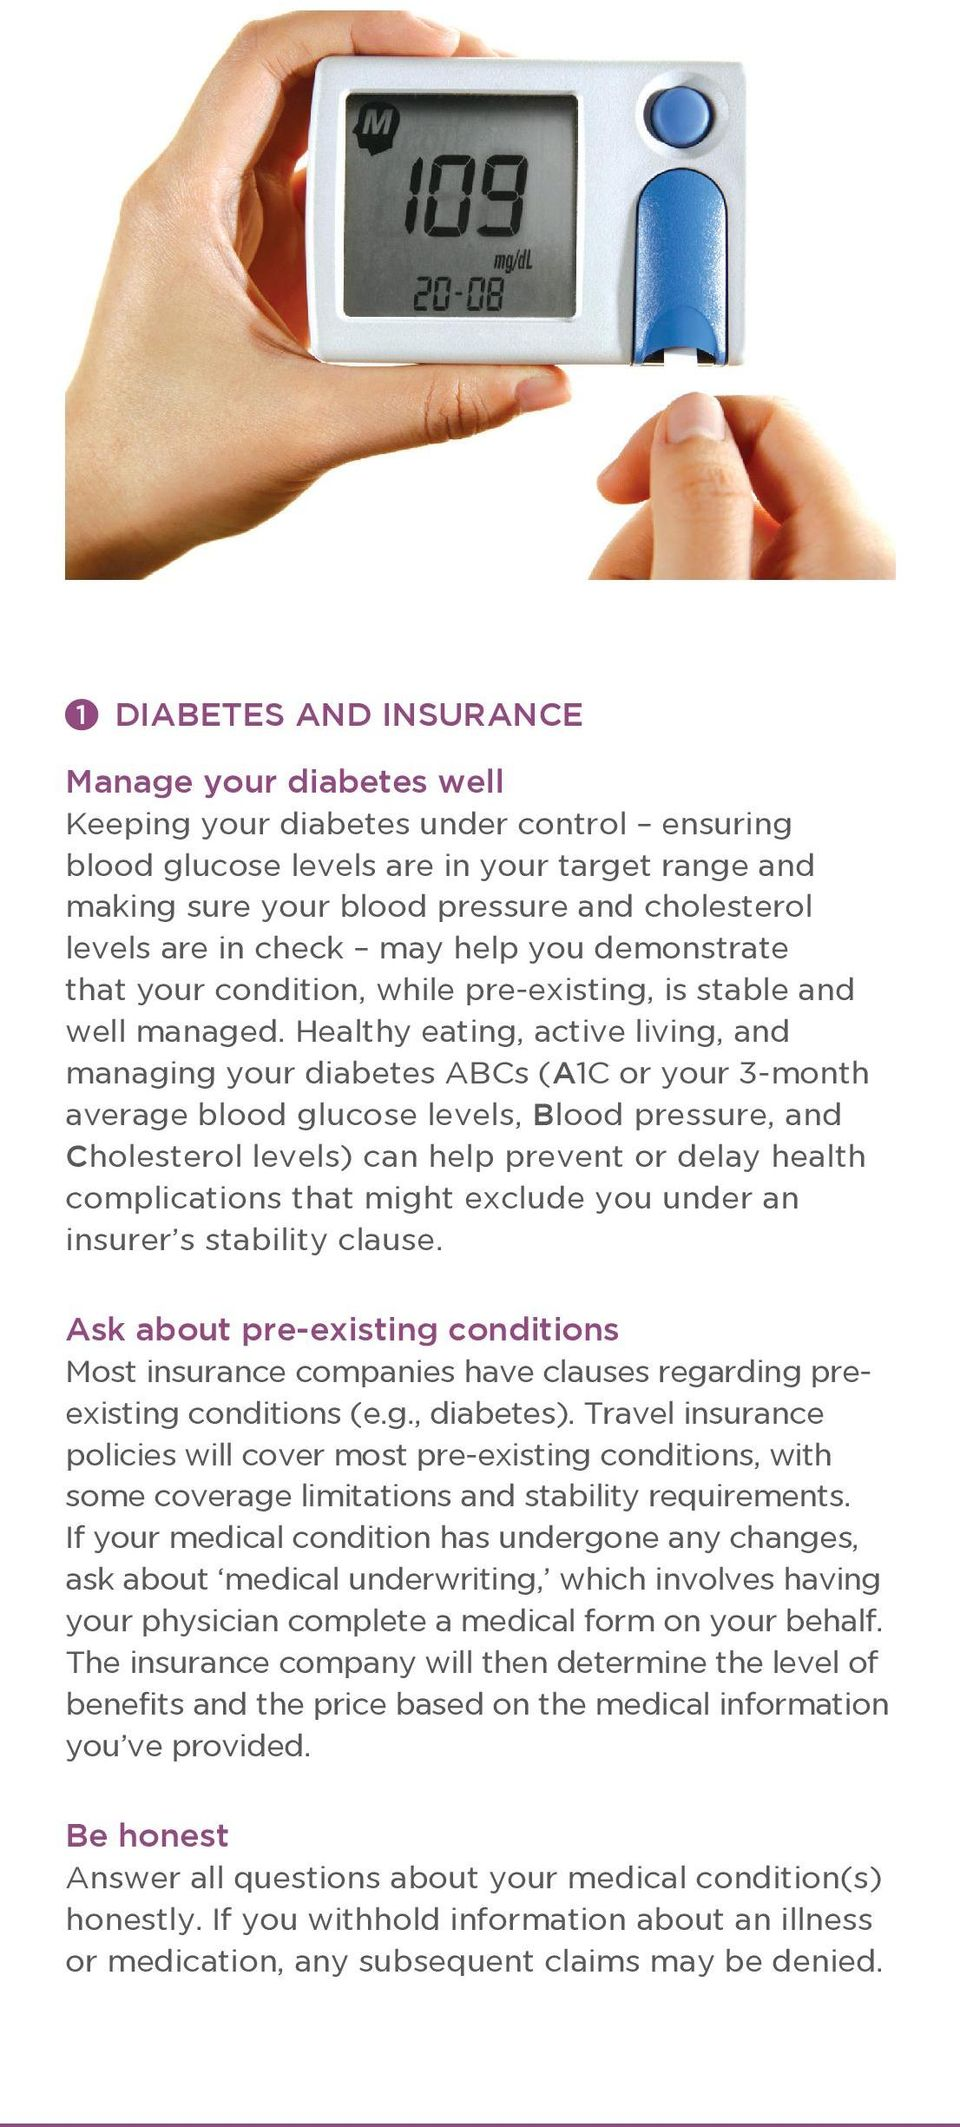 Healthy eating, active living, and managing your diabetes ABCs (A1C or your 3-month average blood glucose levels, Blood pressure, and Cholesterol levels) can help prevent or delay health